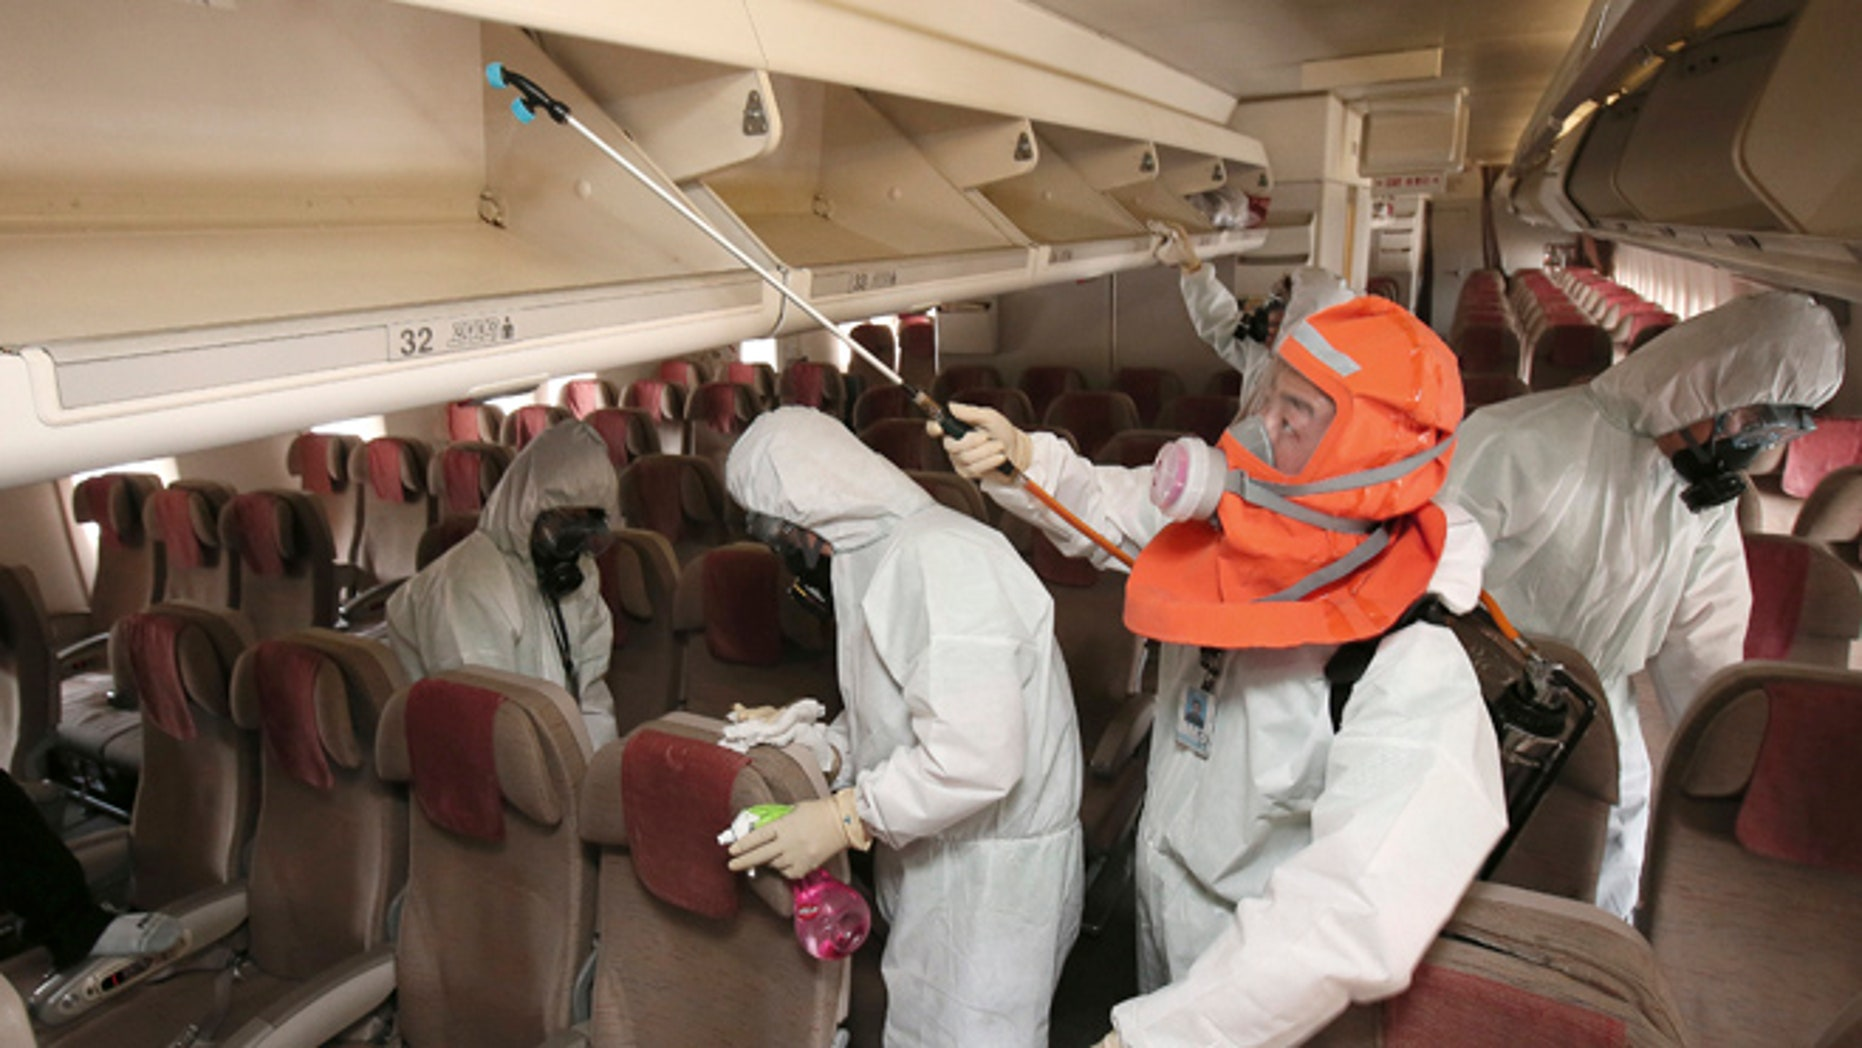 June 4, 2015: Workers wearing protective gears spray anti-septic solution in an airplane amid rising public concerns over the spread of MERS virus at Incheon International Airport in Incheon, South Korea.